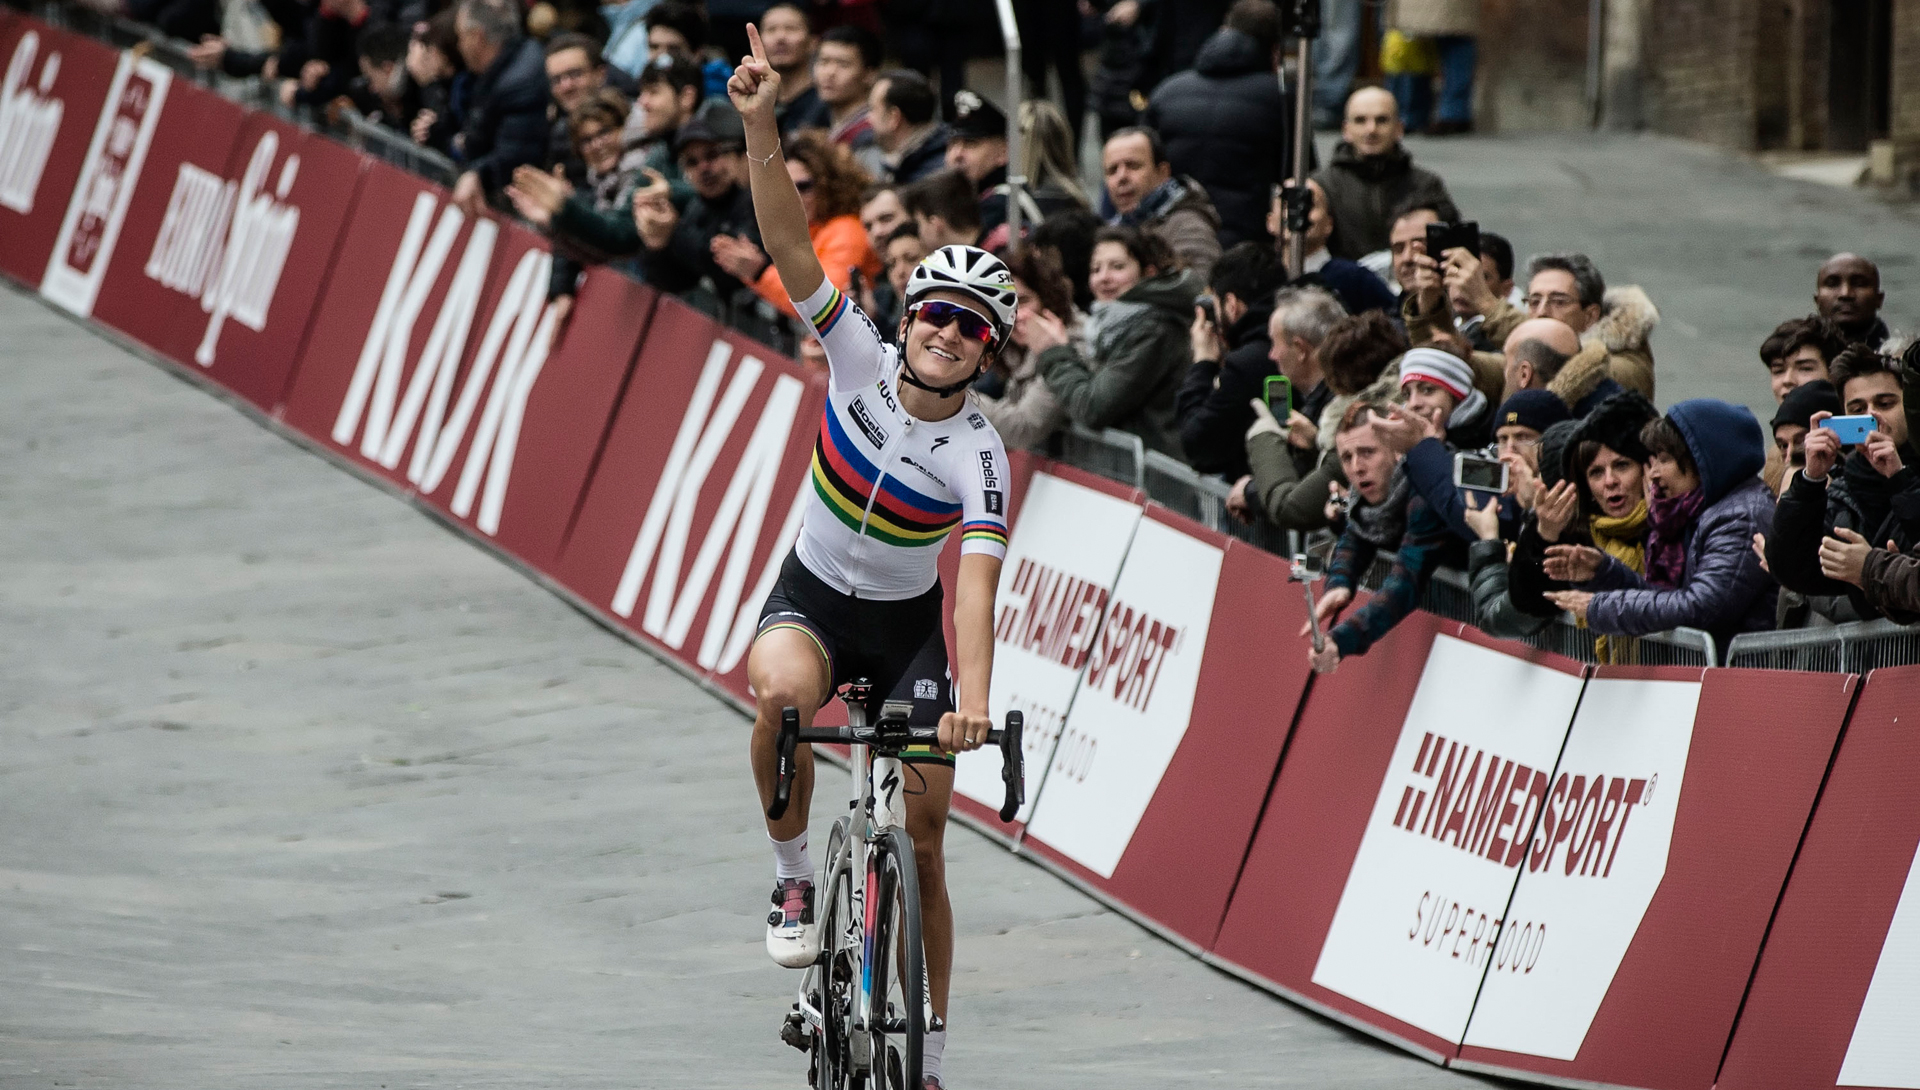 Lizzie Armitstead wins opening event of the UCI Women's WorldTour in Italy